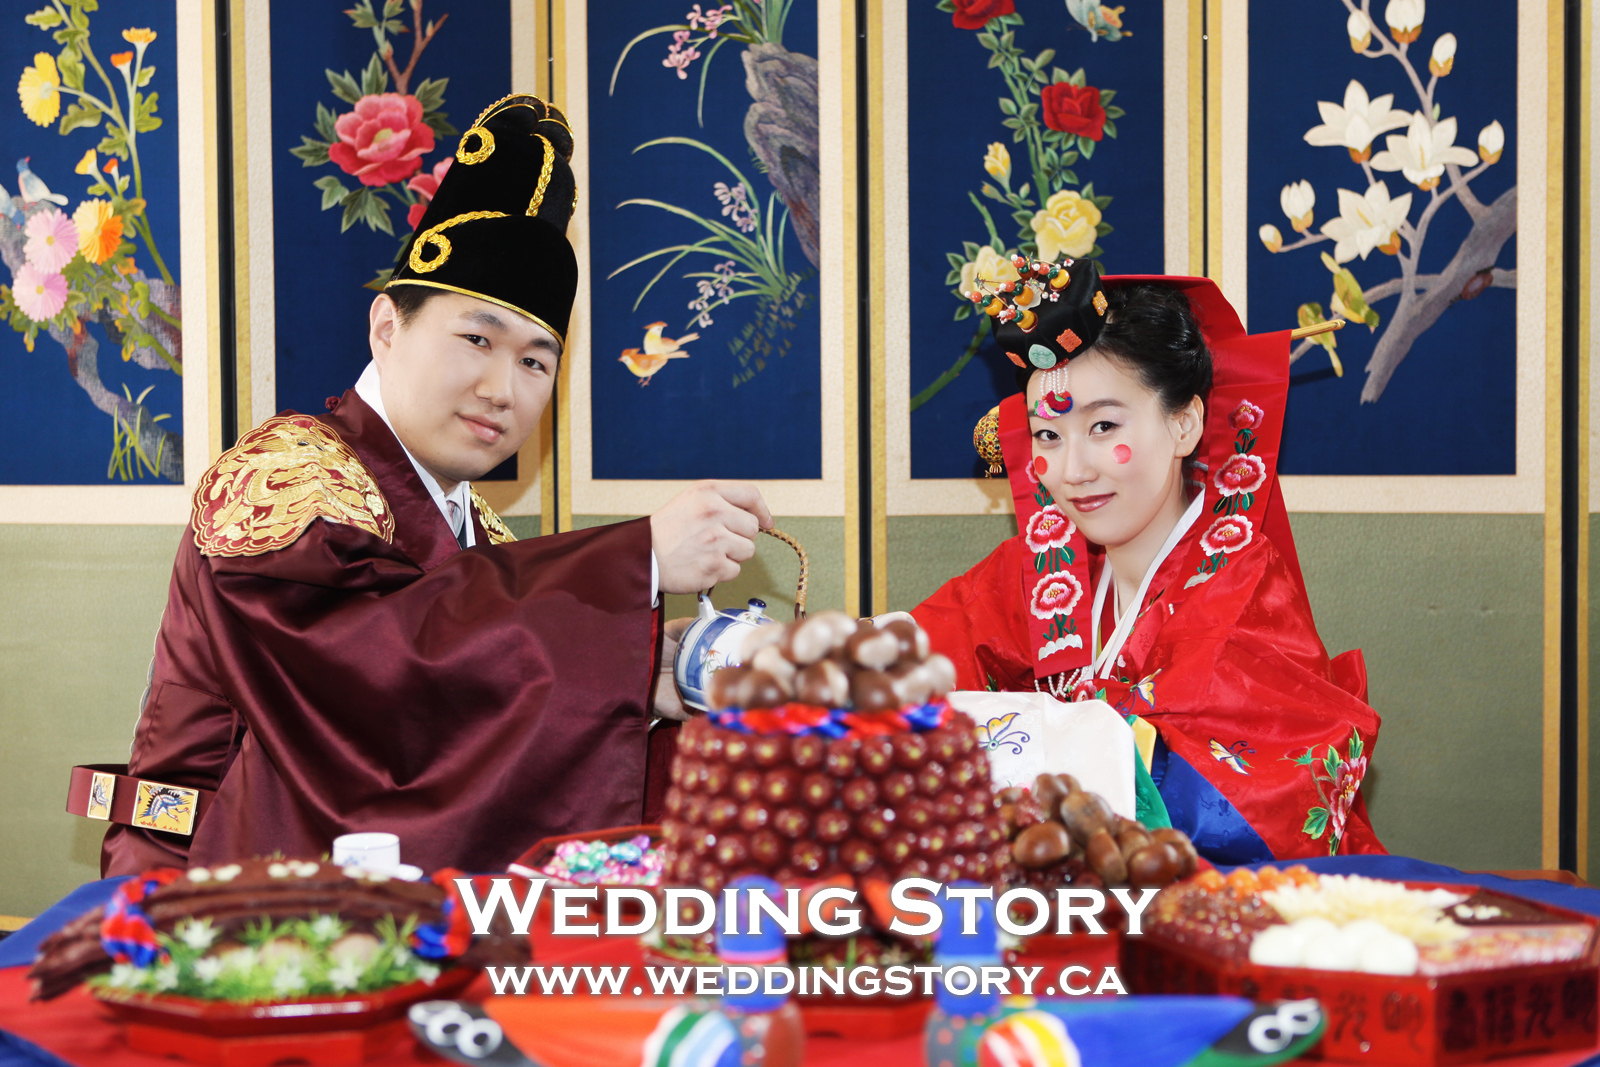 Wear Can Be Quite Playful This Traditional Ceremony Is A Significant Part Of The Korean Wedding Ceremonies And Are Proceeded In Respectful Manner